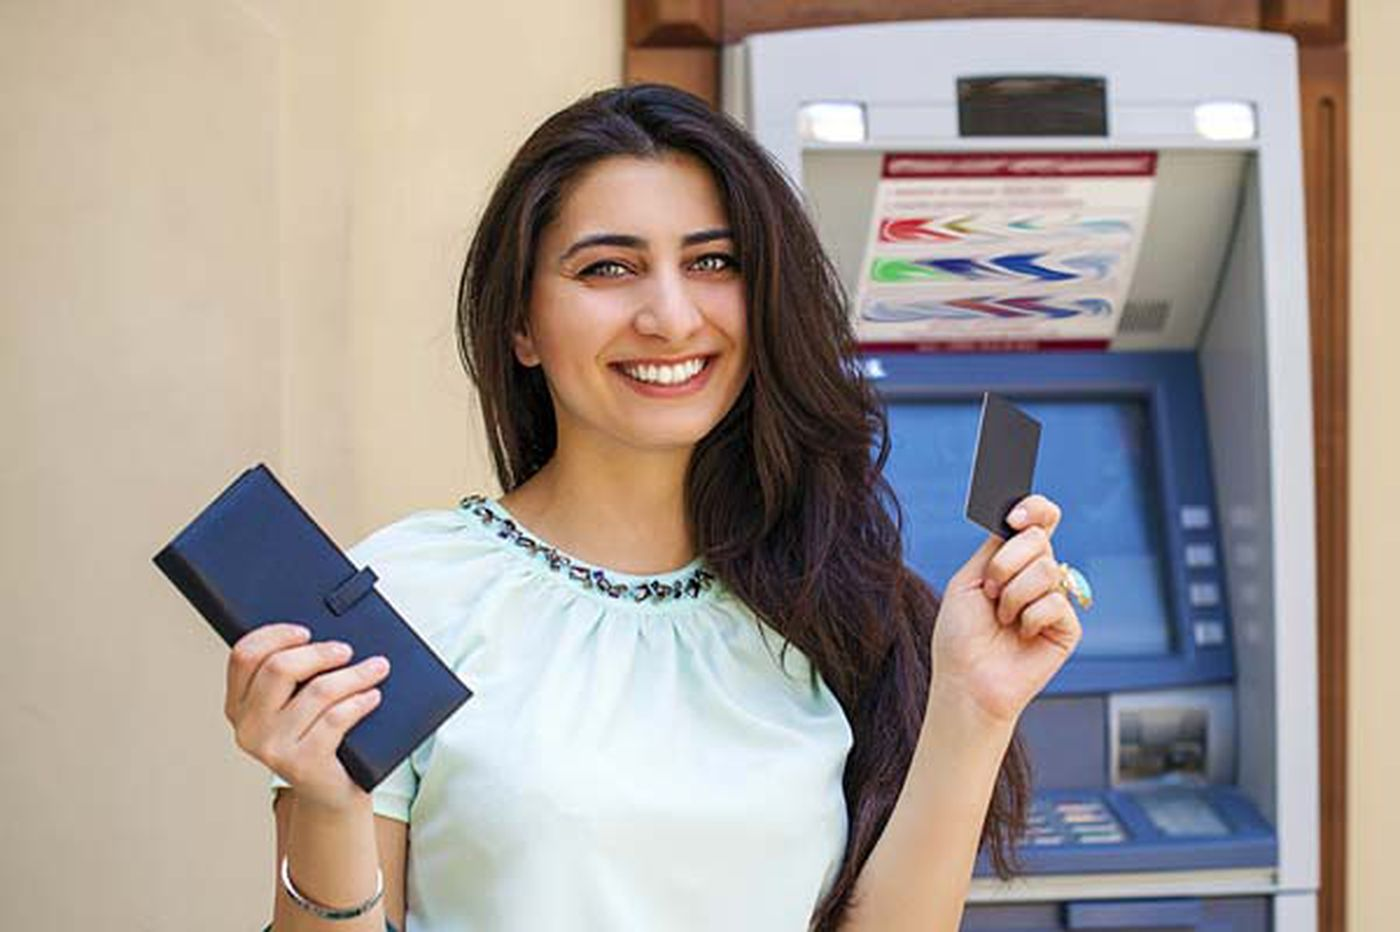 Best banks for free checking: comparing fees